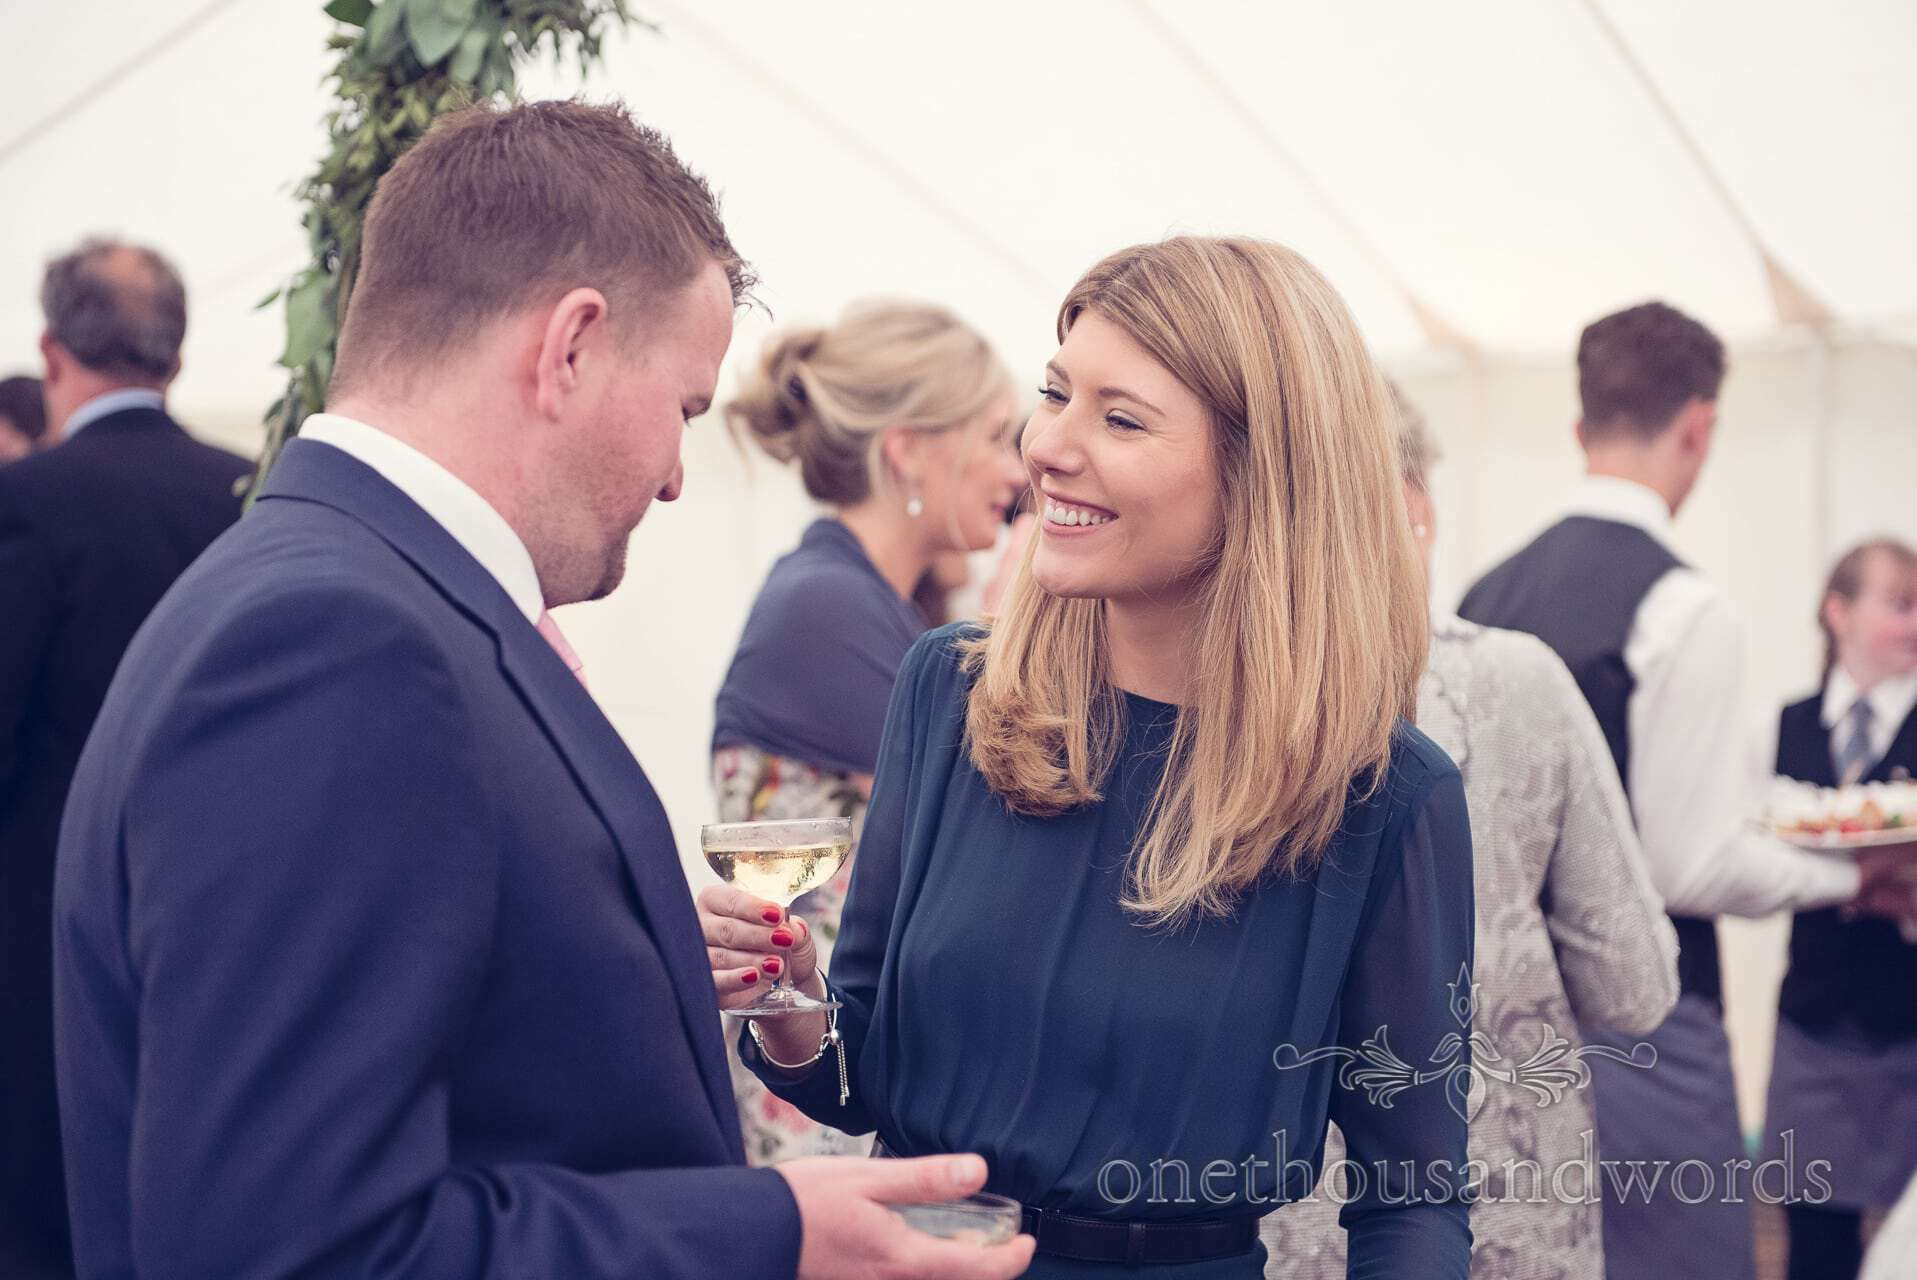 Wedding guests enjoy champagne drinks reception at marquee wedding